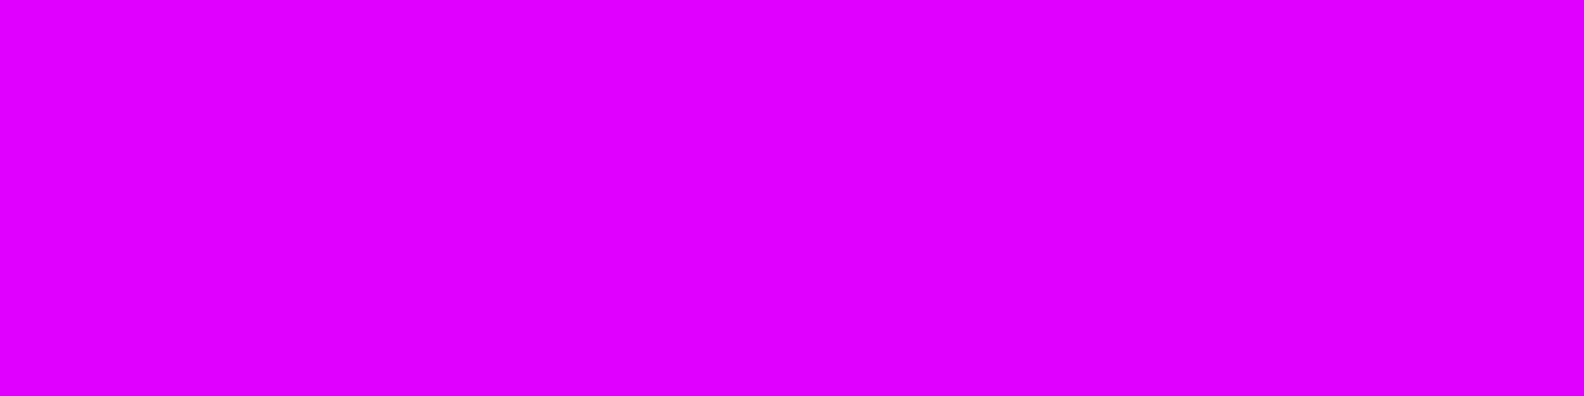 1584x396 Psychedelic Purple Solid Color Background